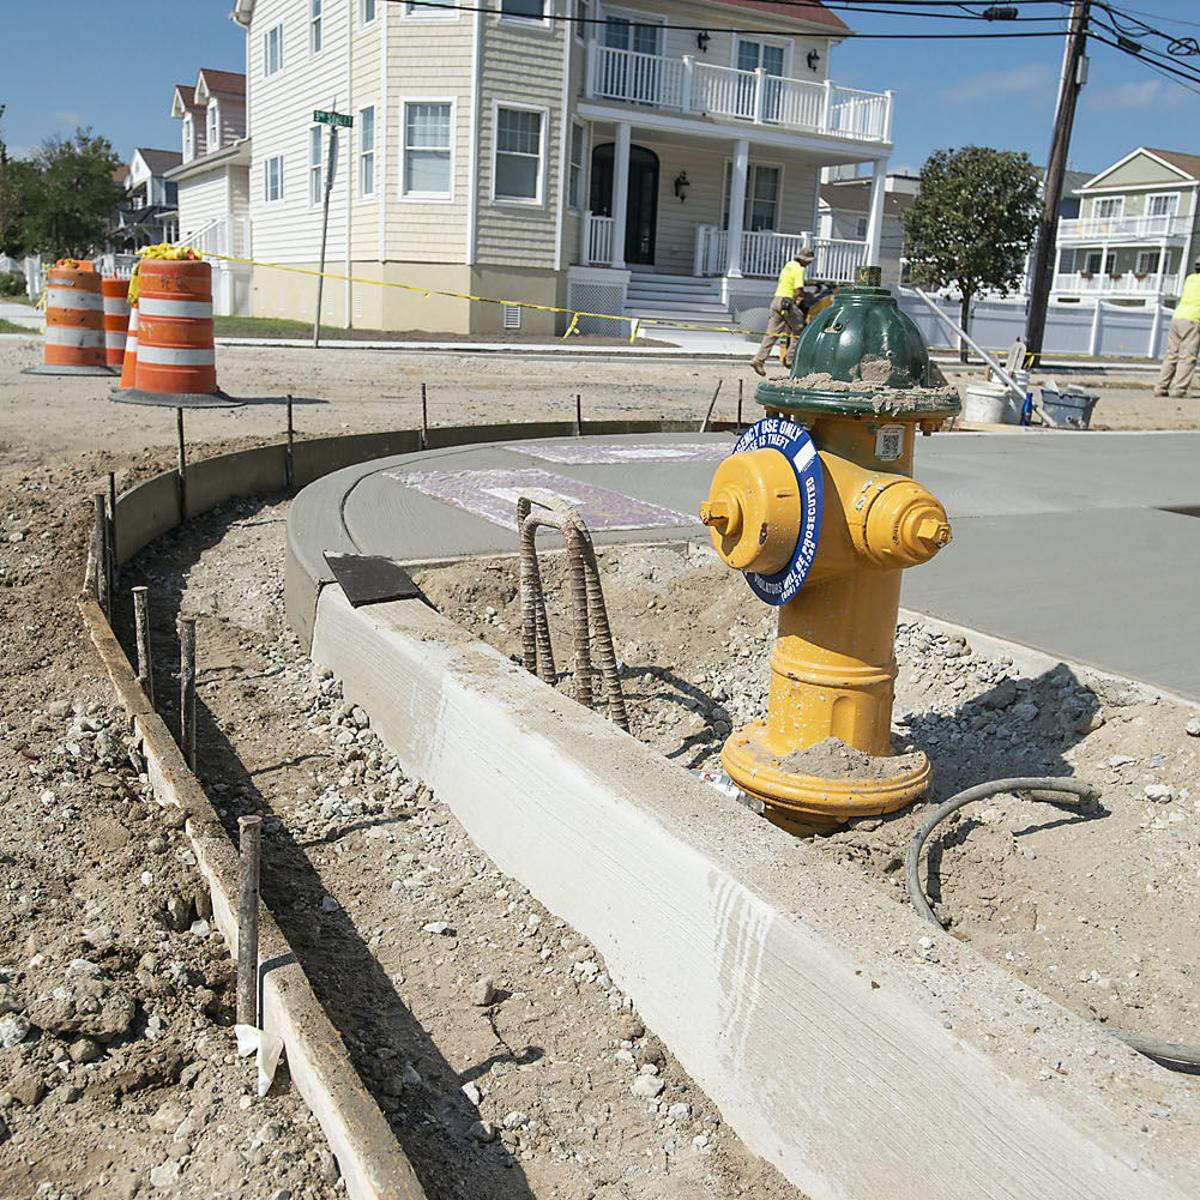 How high can they go? Raising roads to outrun rising waters